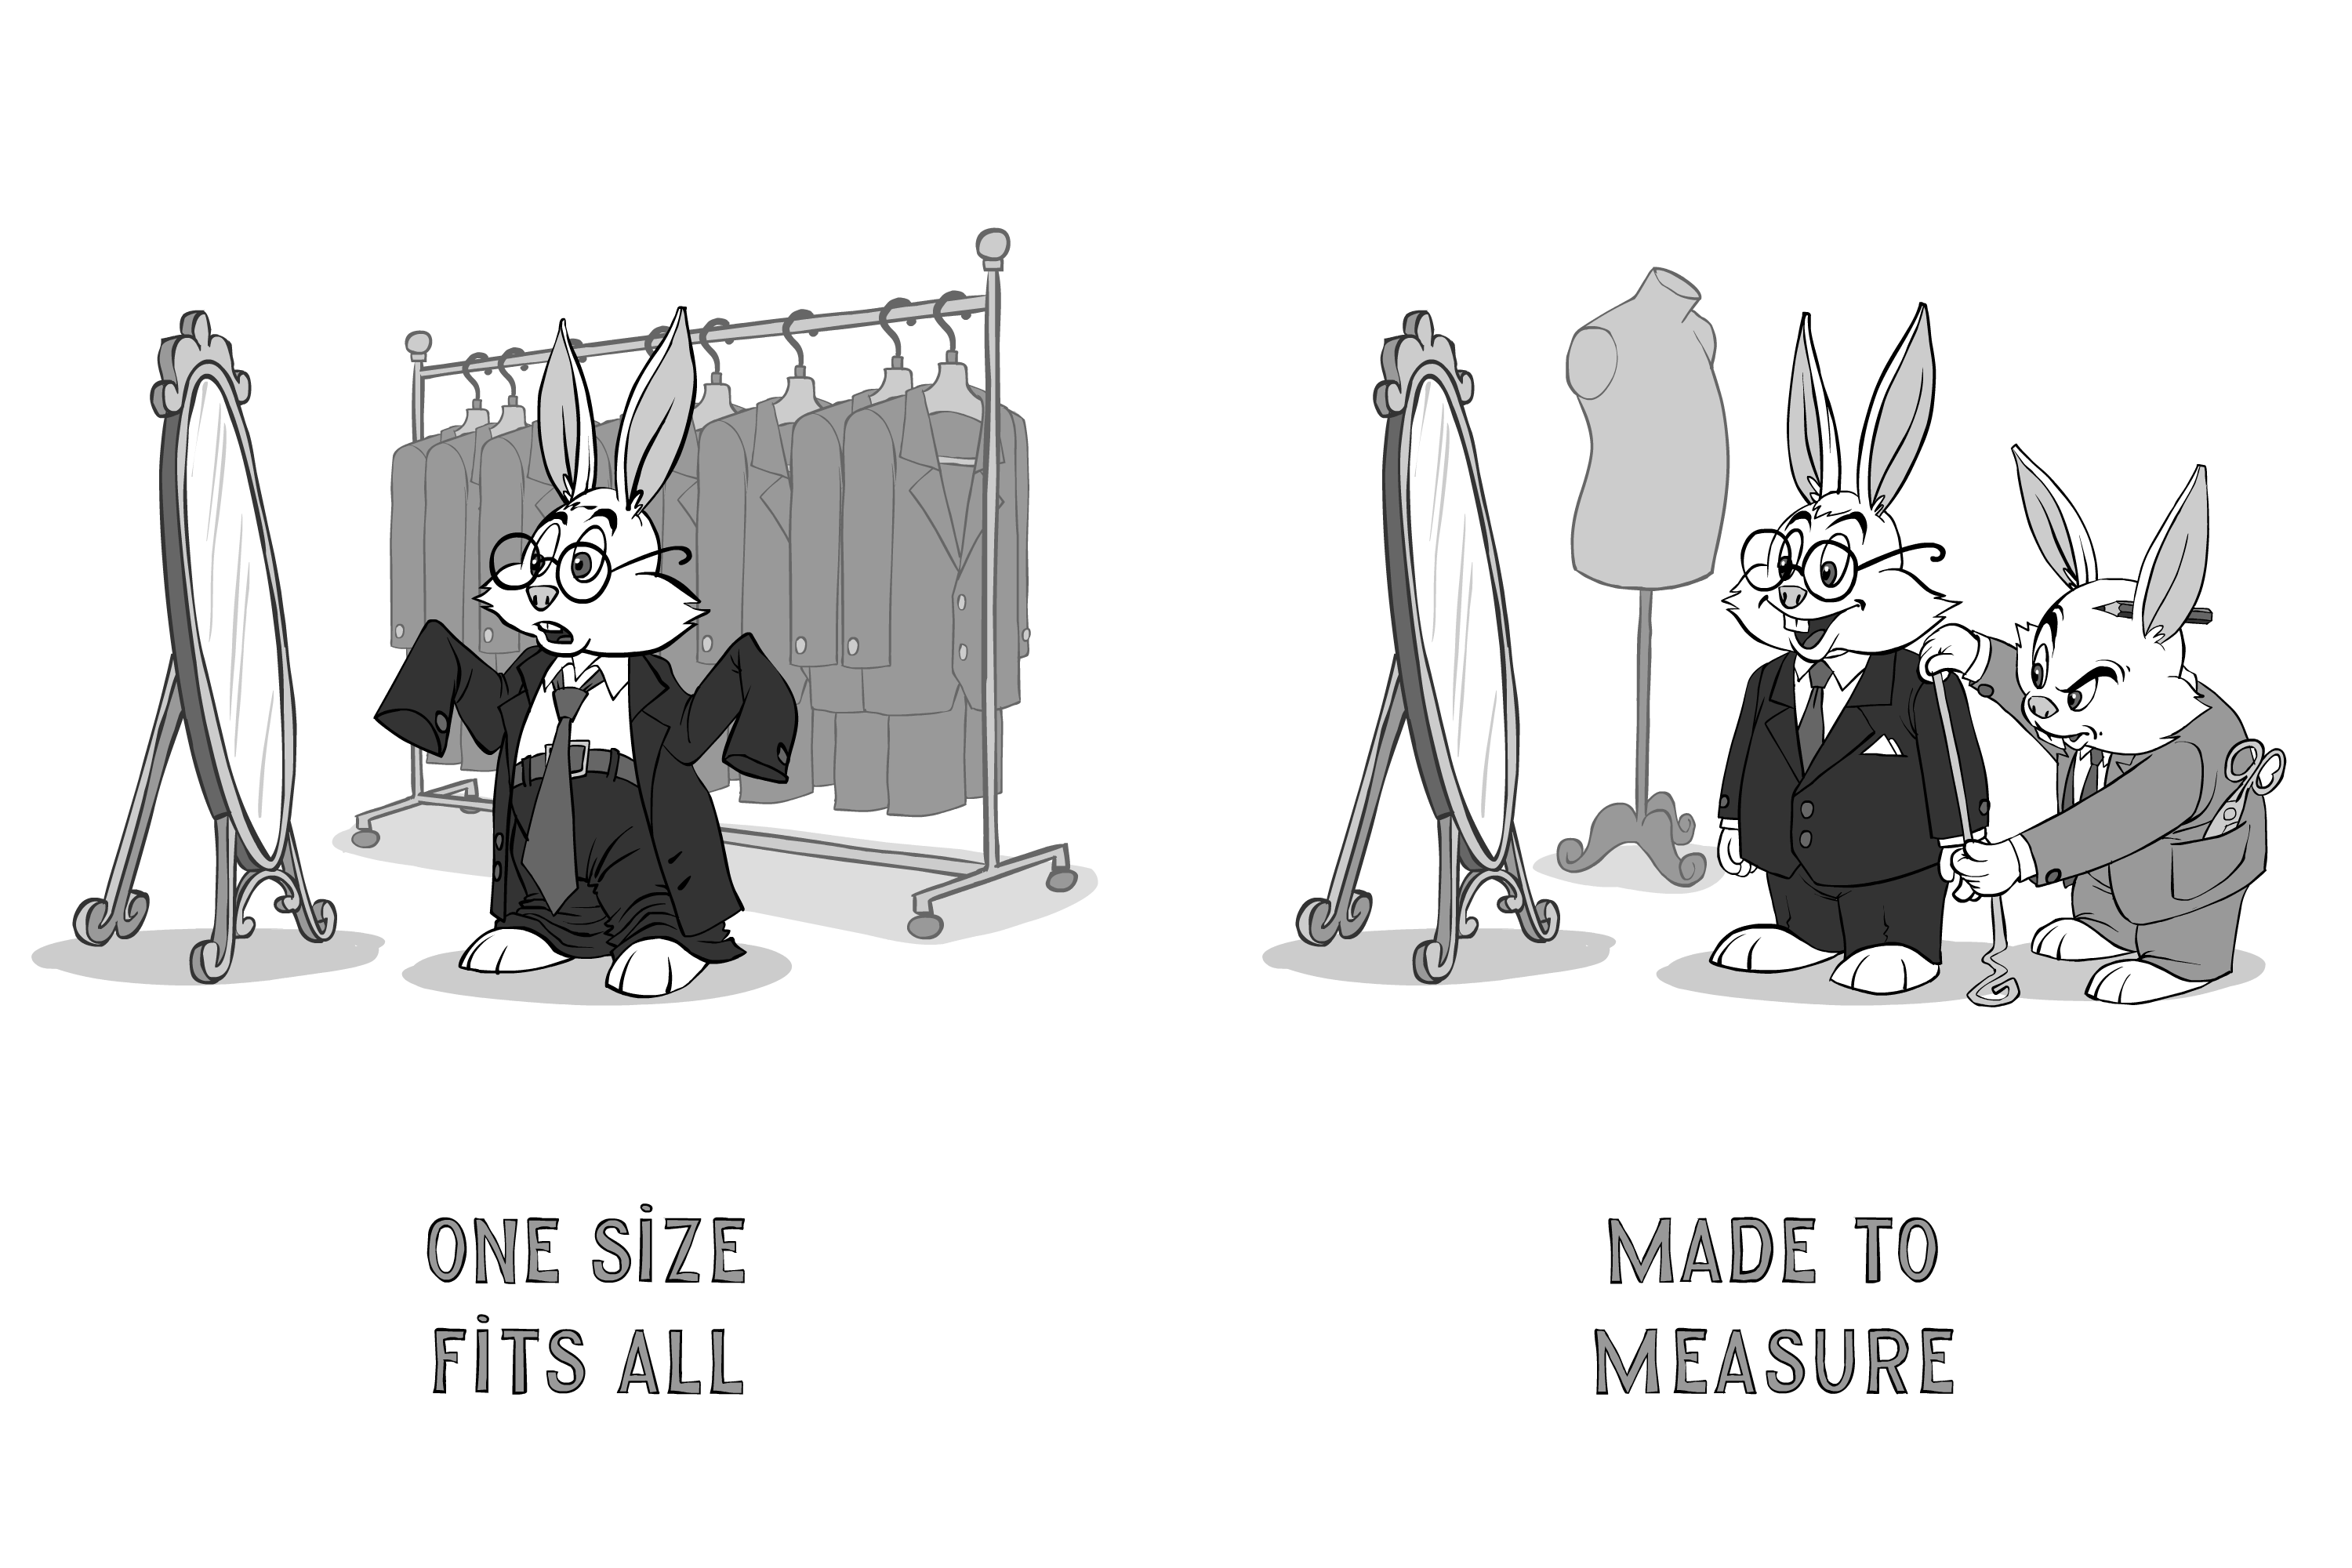 one size fits none, be specific